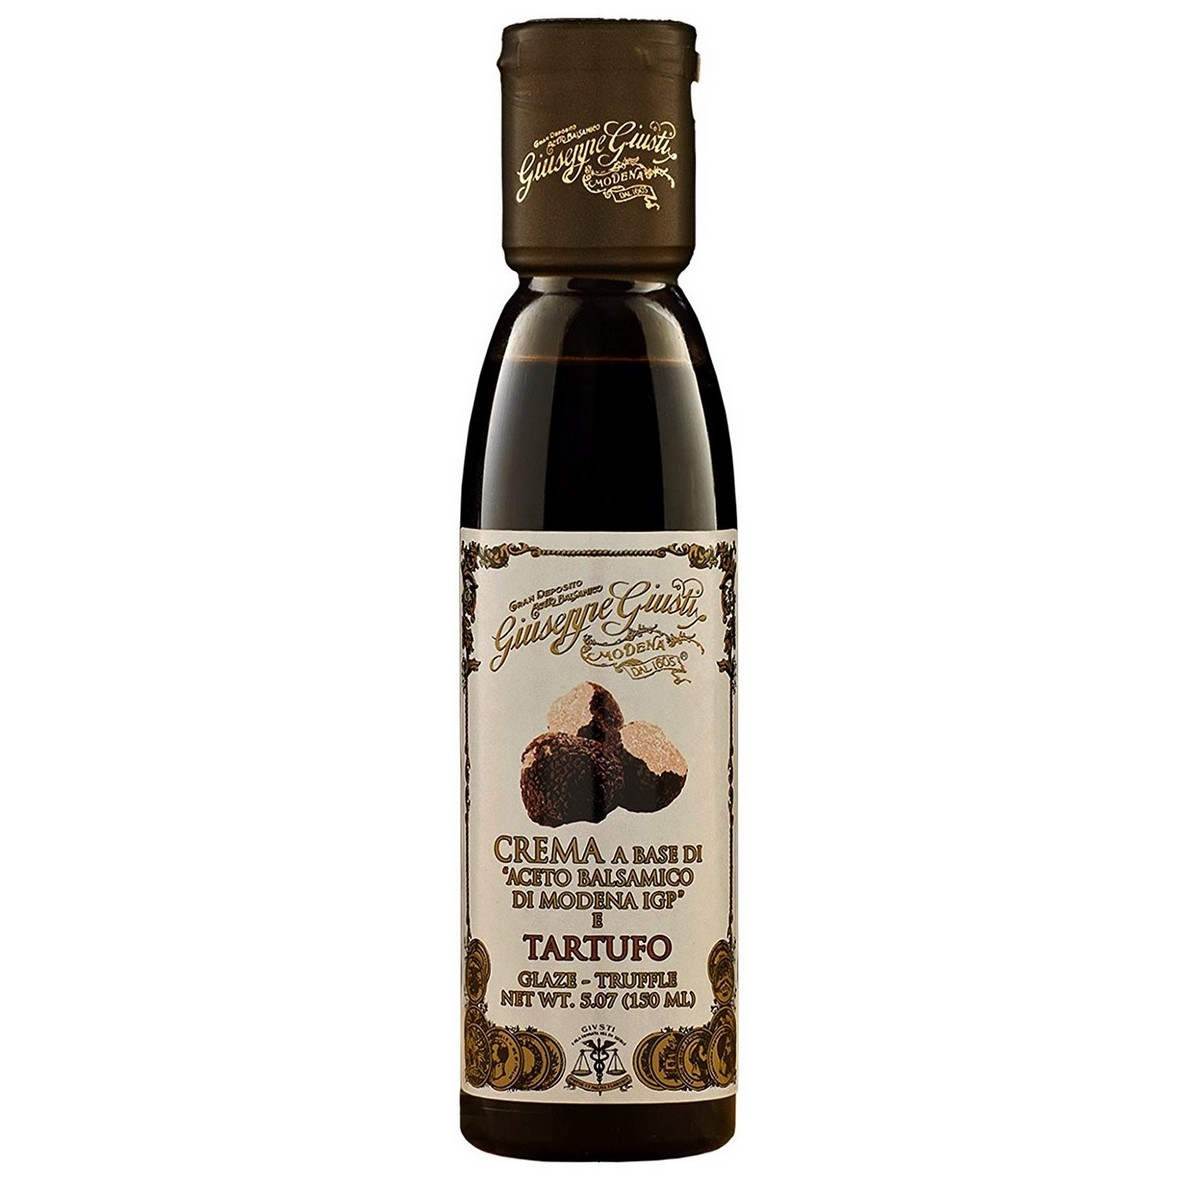 Glazes with Balsamic Vinegar of Modena IGP - Truffle